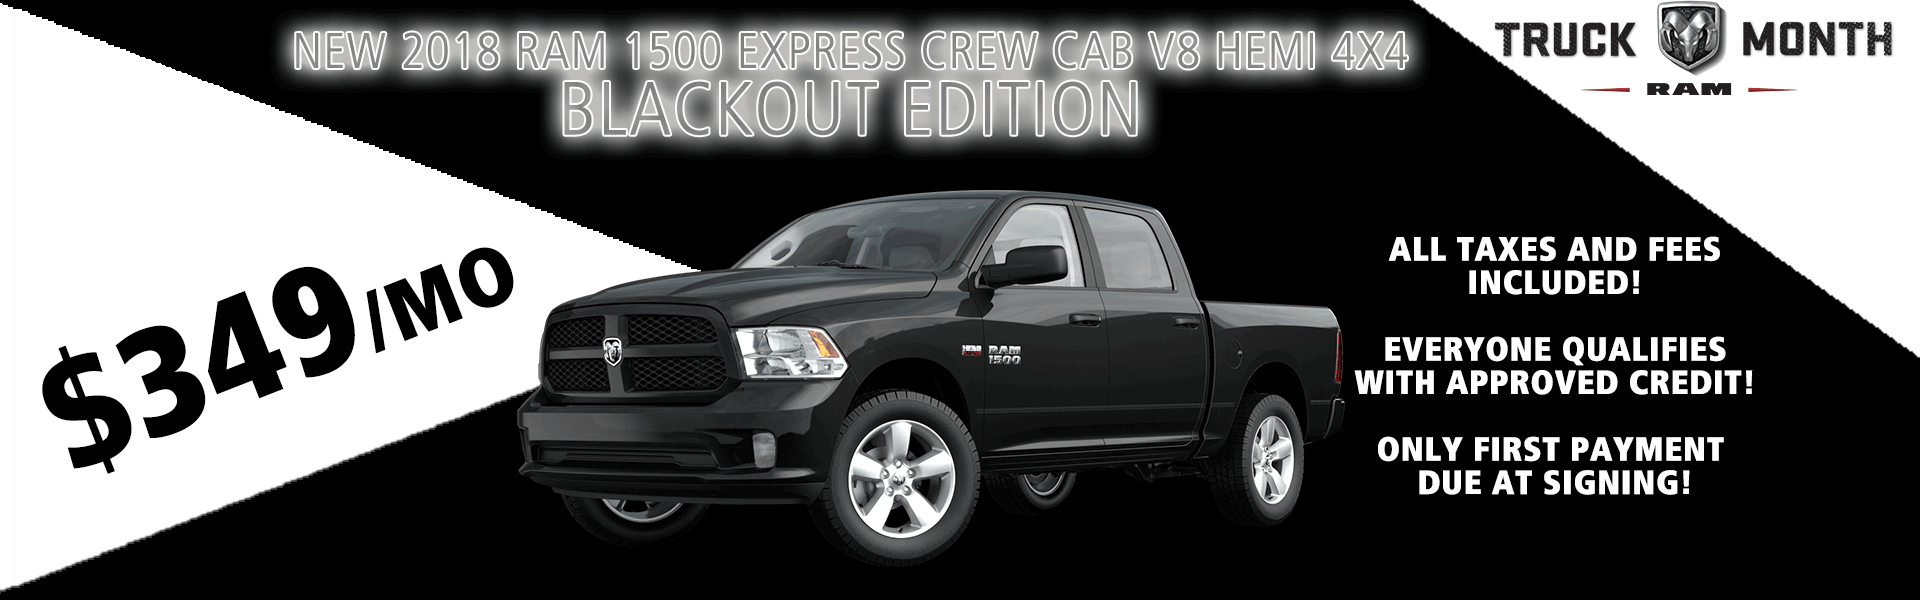 NEW 2018 RAM 1500 EXPRESS CREW CAB V8 HEMI 4X4 BLACKOUT EDITION carright auto moon township pittsburgh